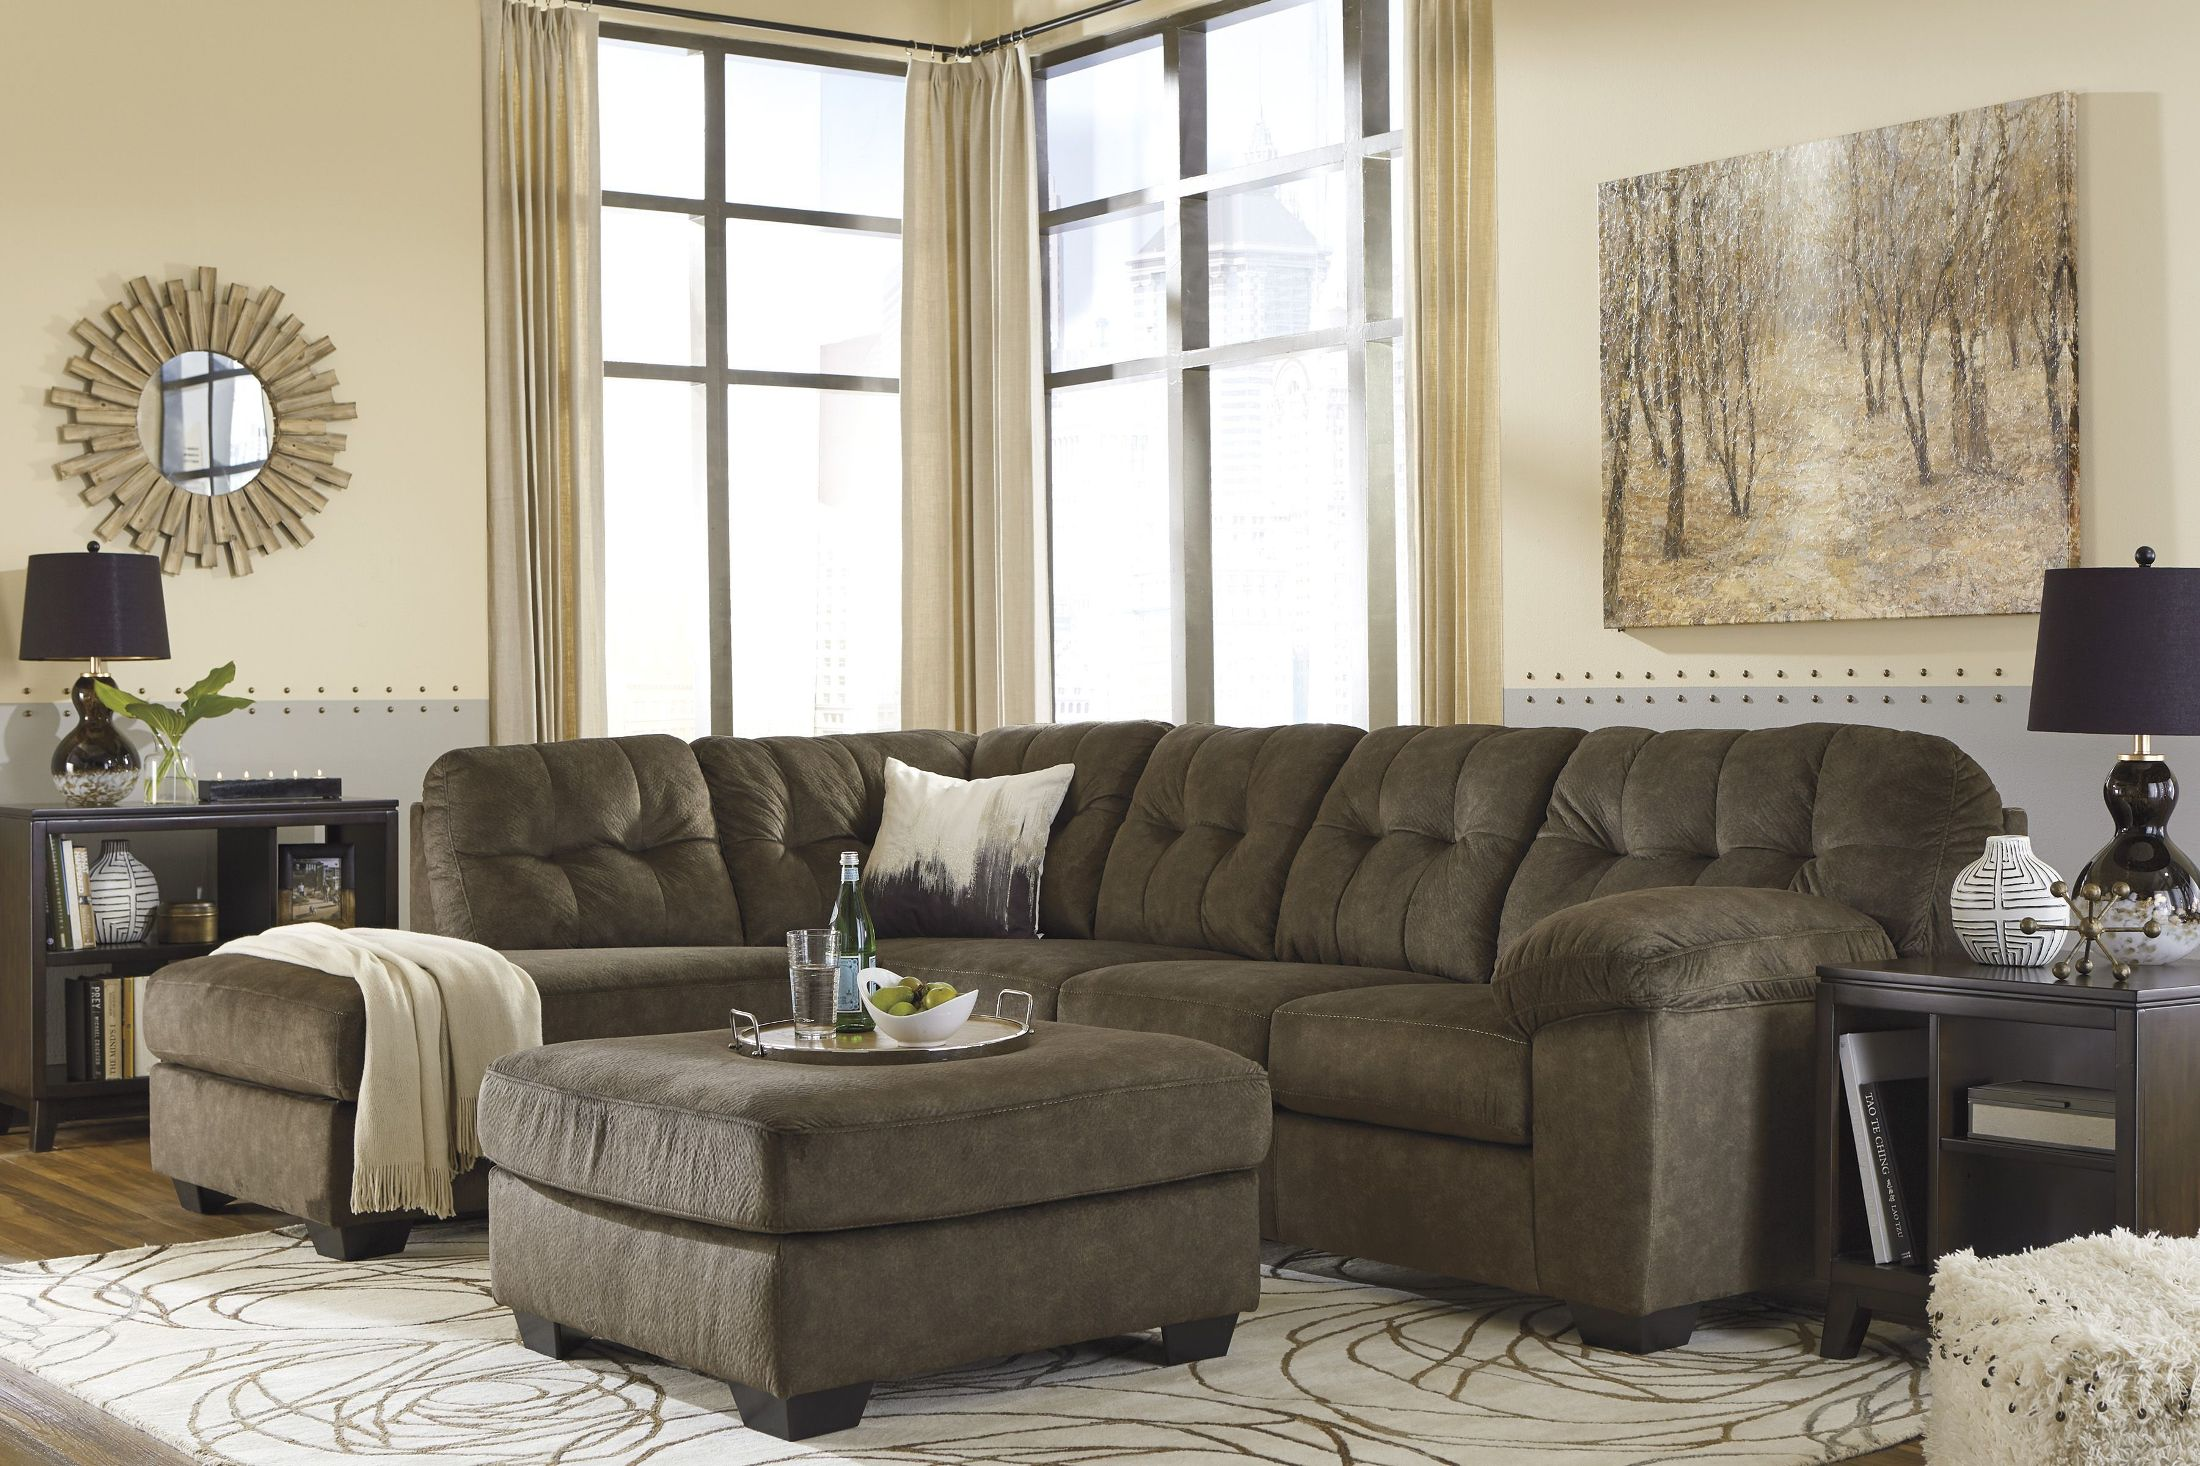 Accrington Earth LAF Sectional from Ashley